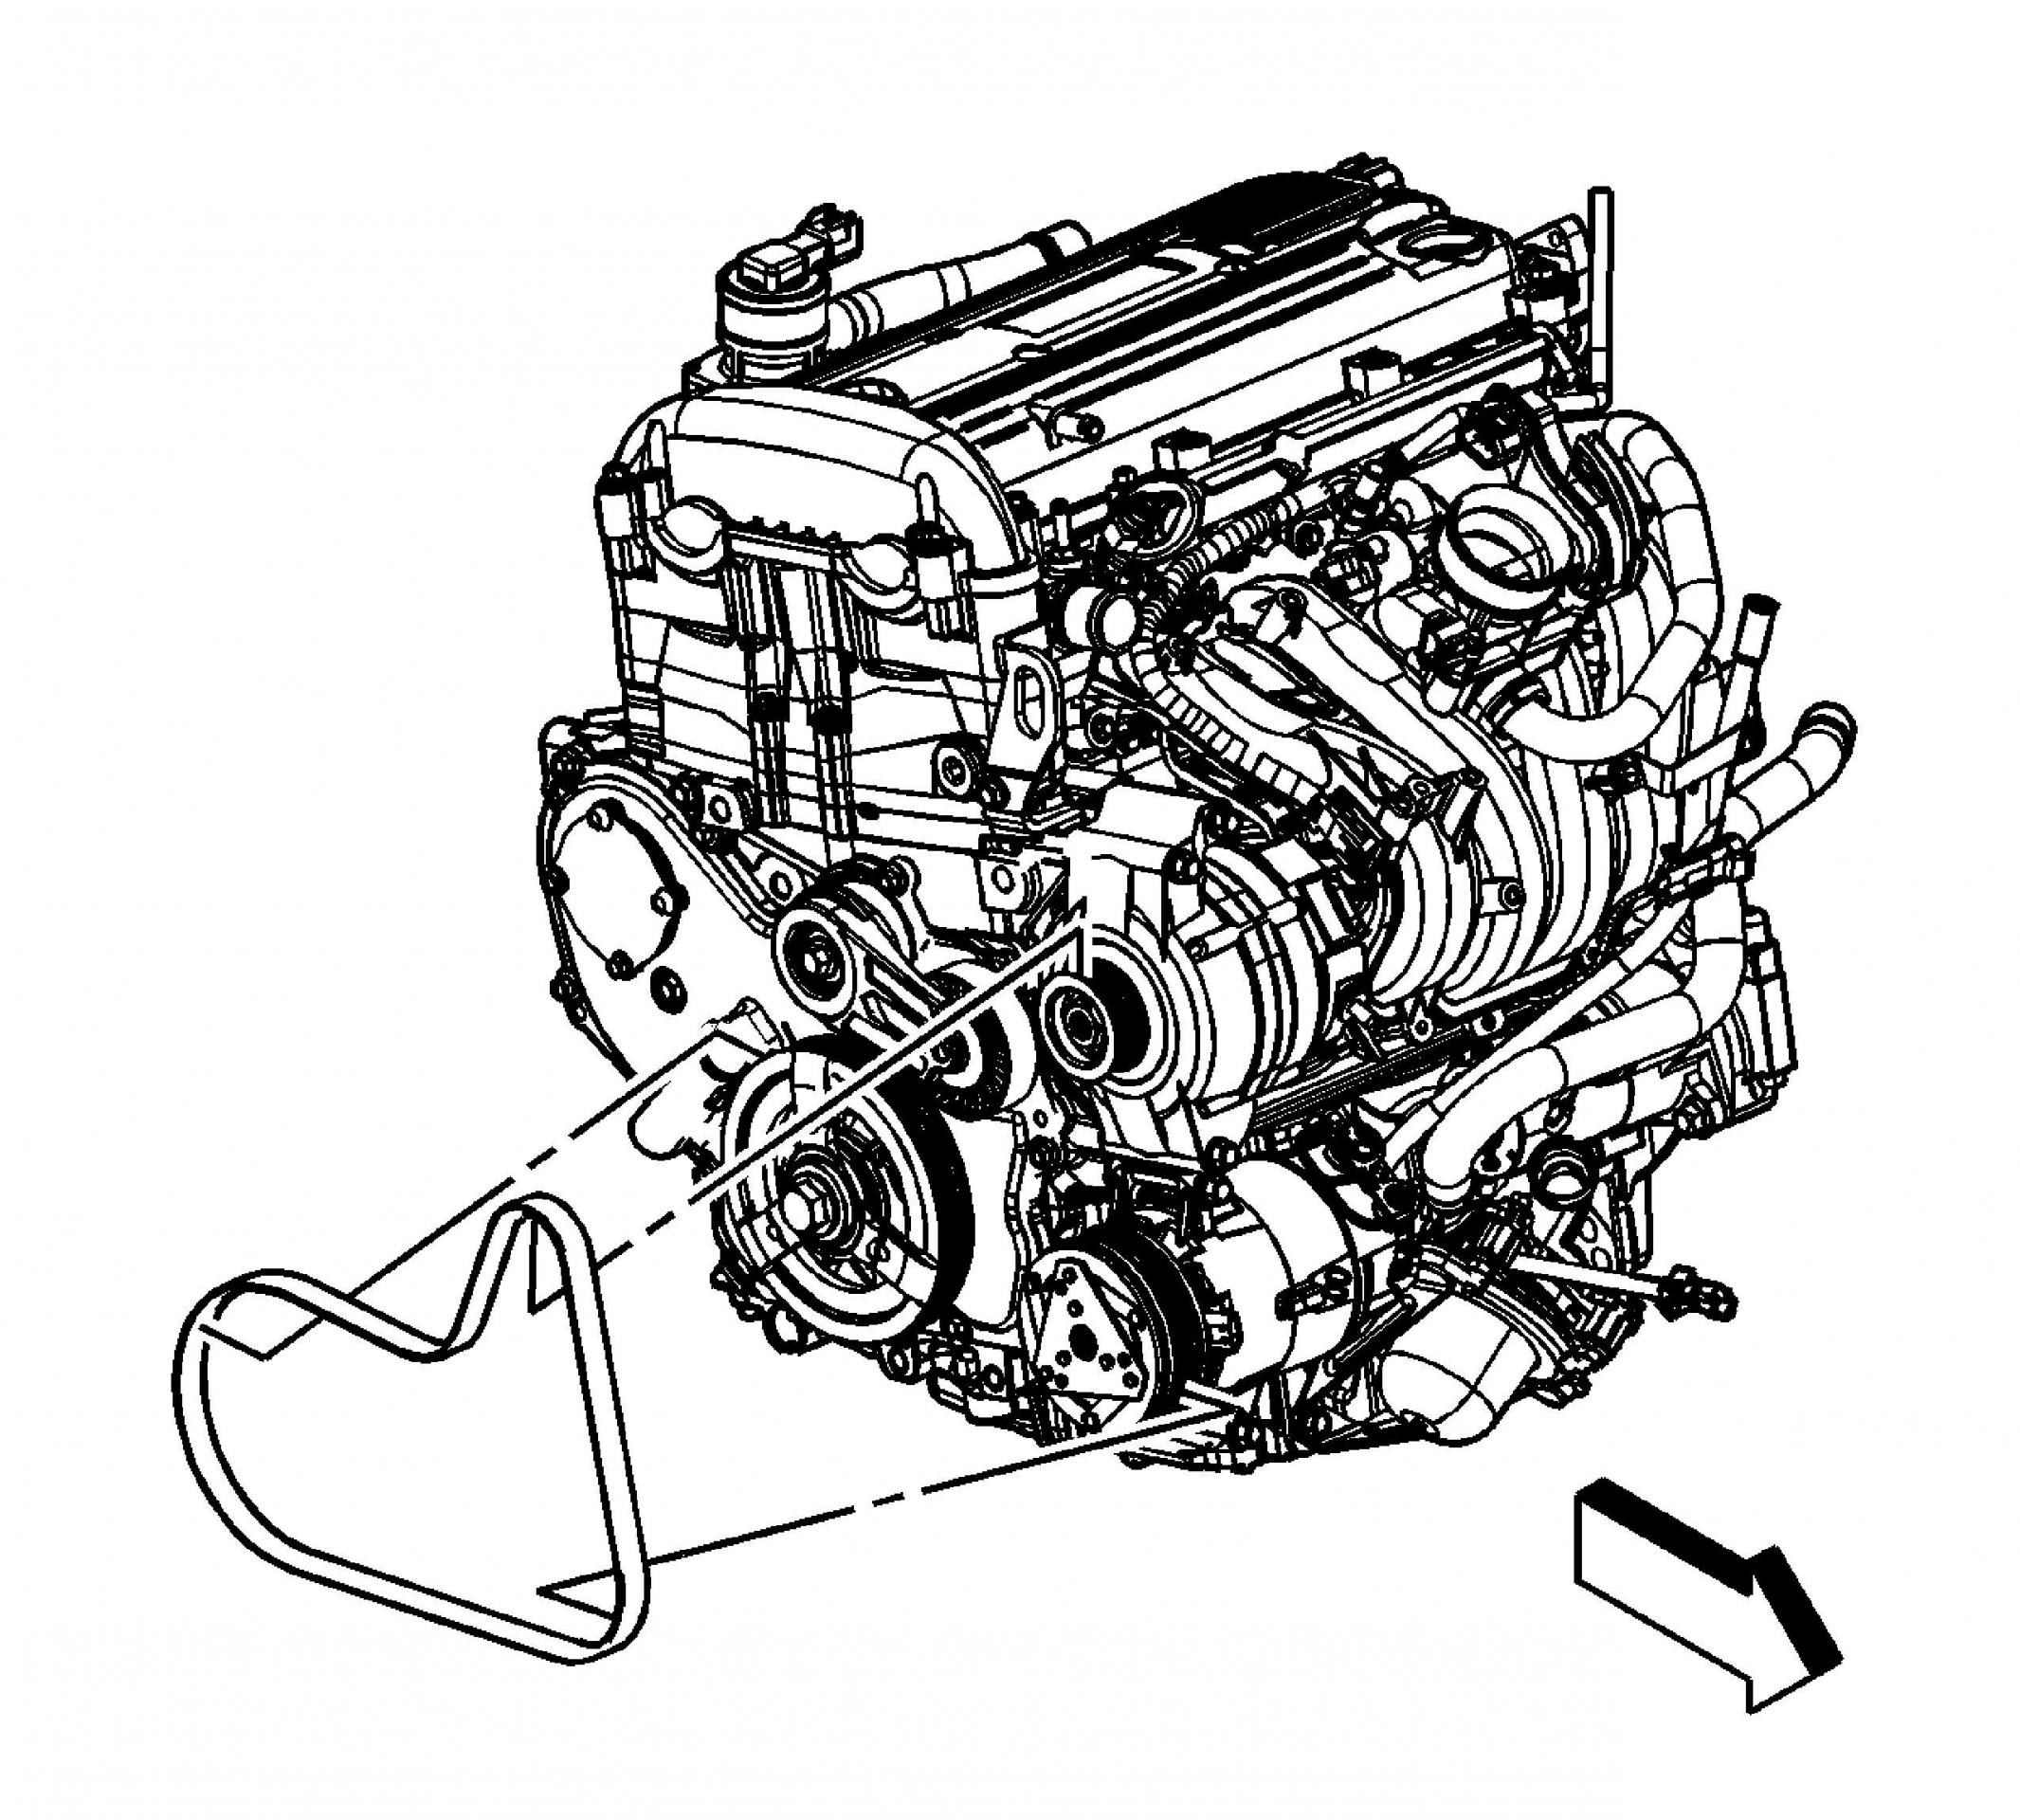 2005 Chevy Aveo Serpentine Belt Diagram Gmc Yukon Engine